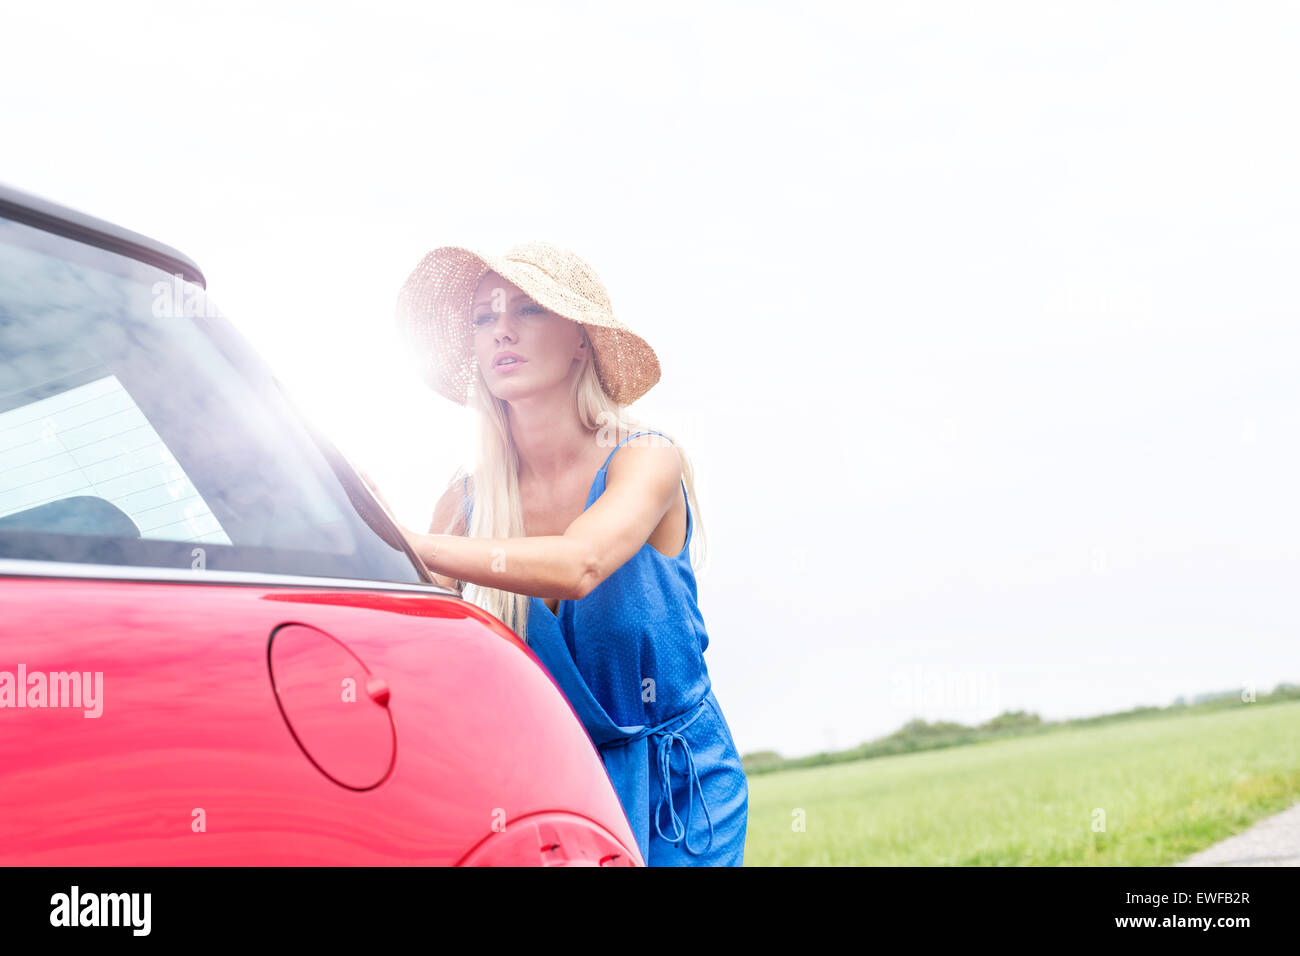 Woman pushing broken down car against clear sky - Stock Image